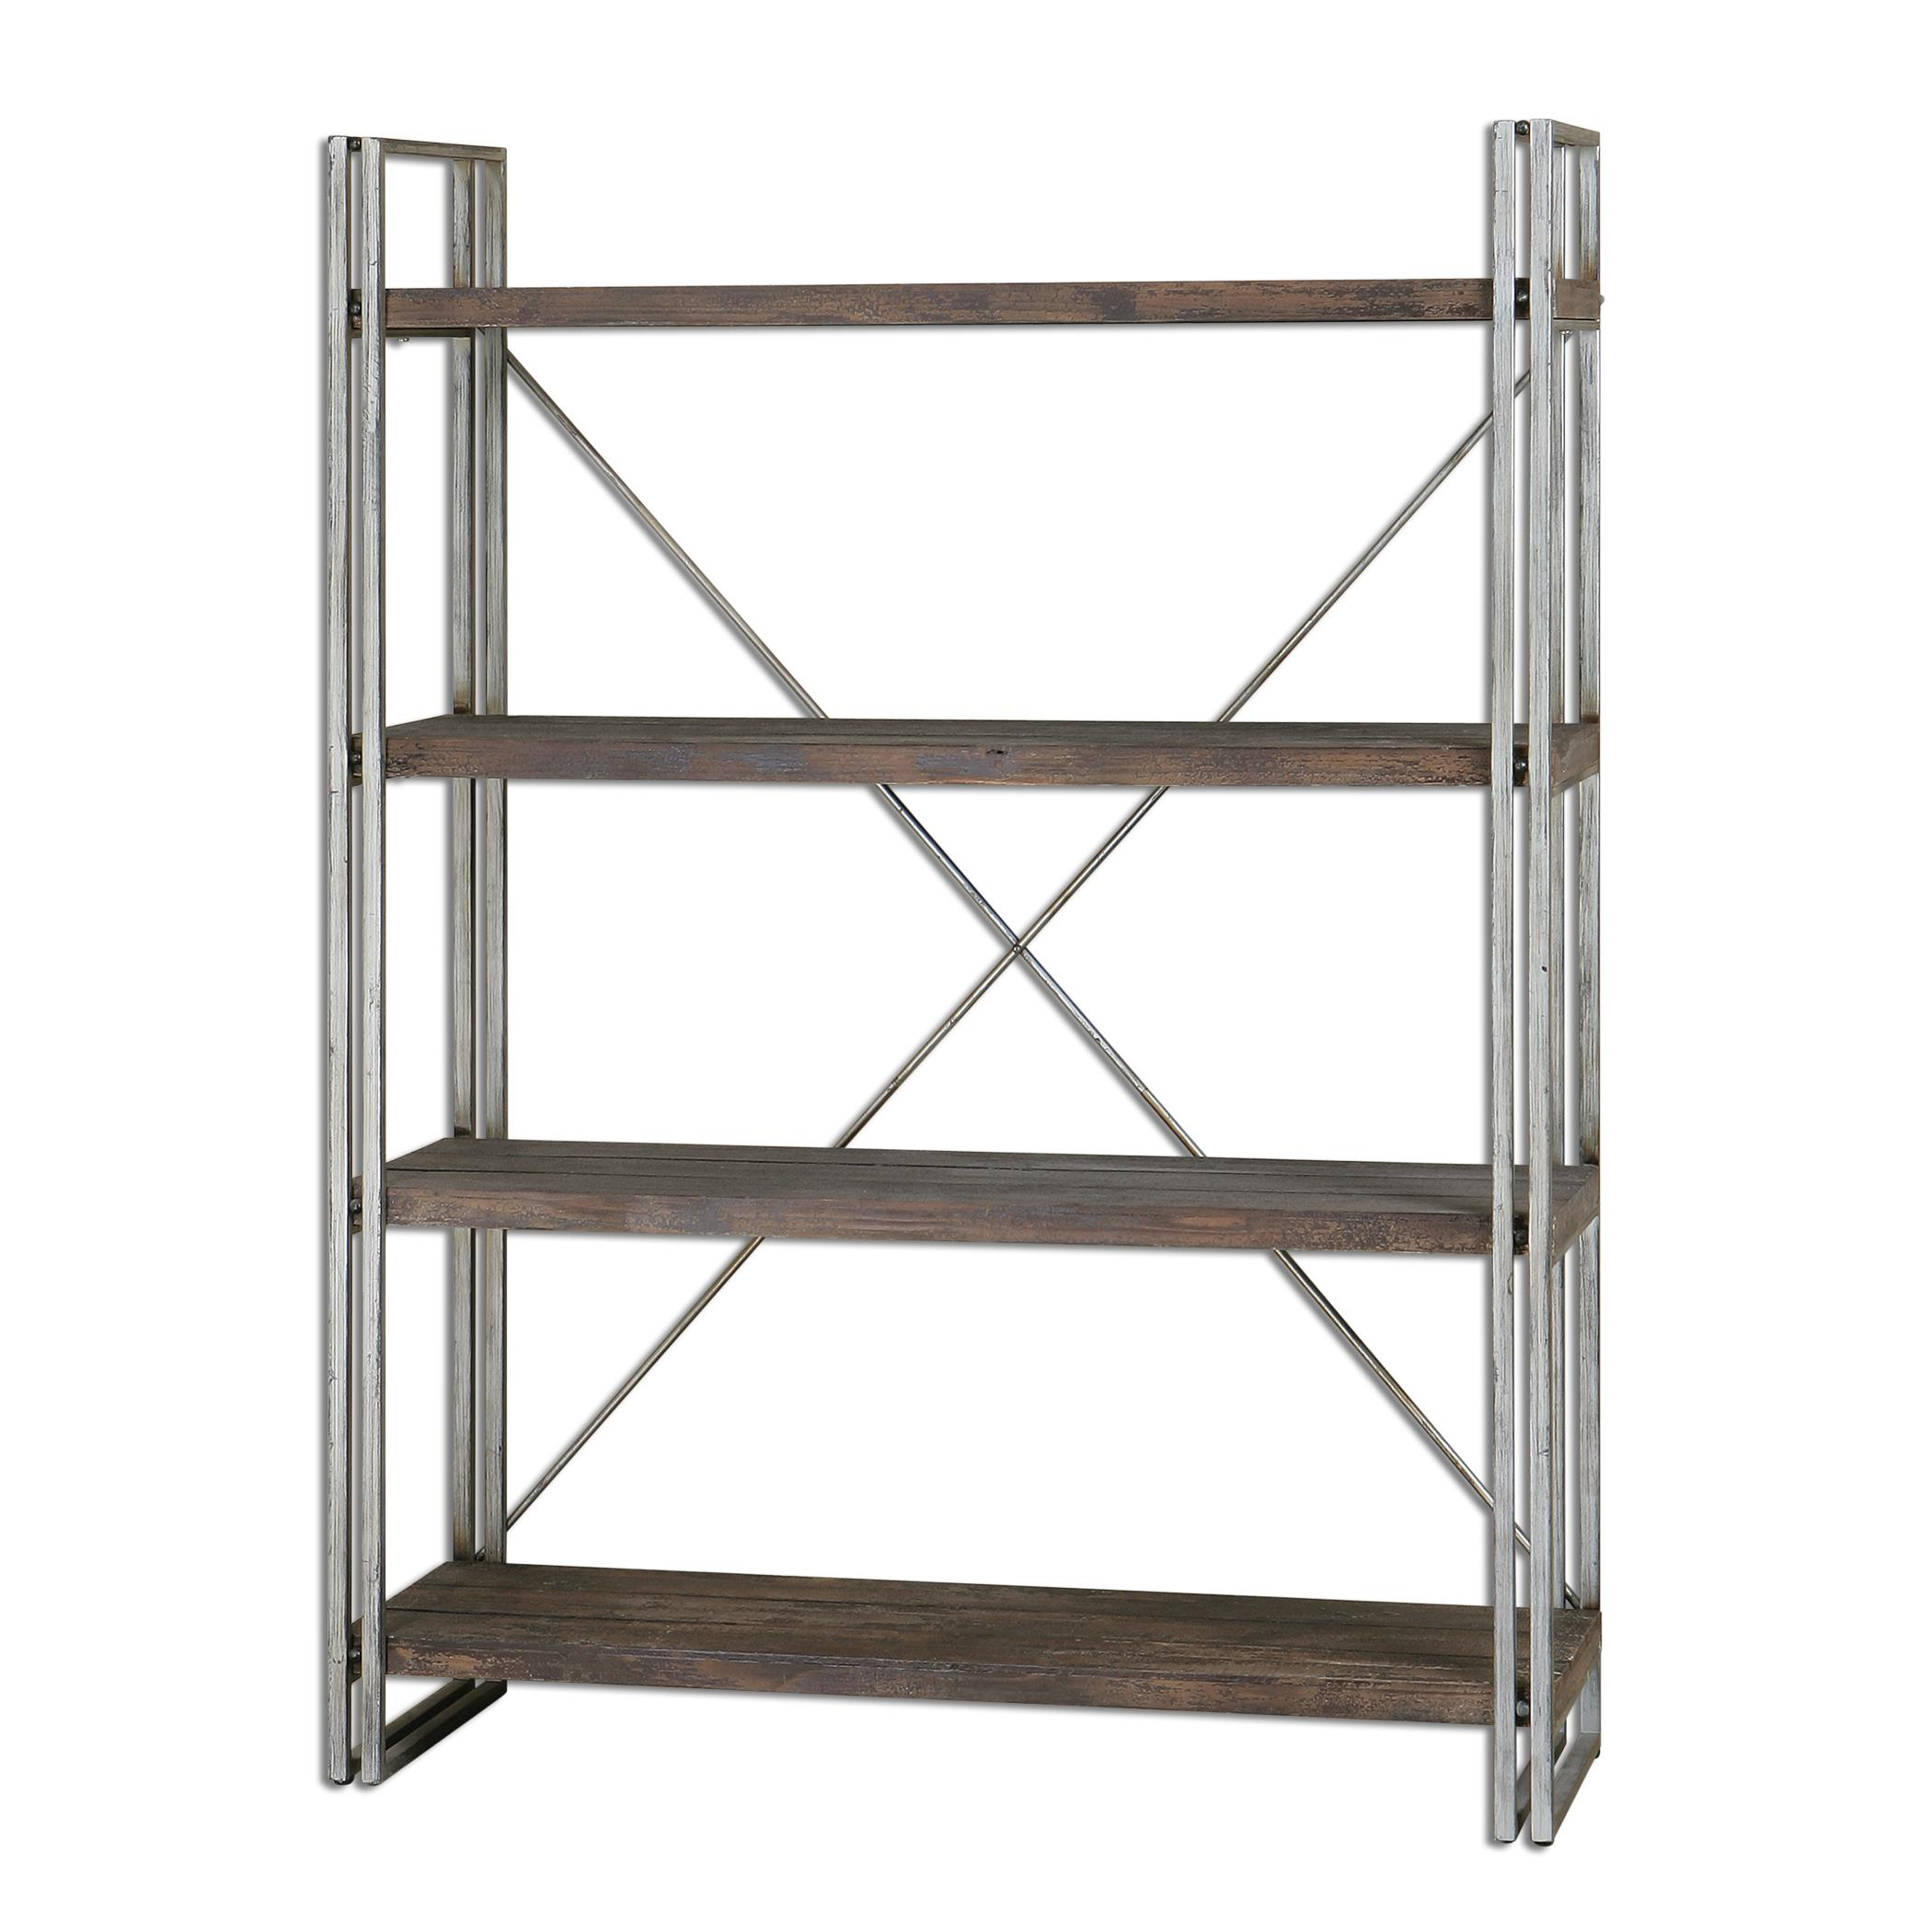 Accent Furniture - Bookcases Greeley Metal Etagere by Uttermost at Goffena Furniture & Mattress Center